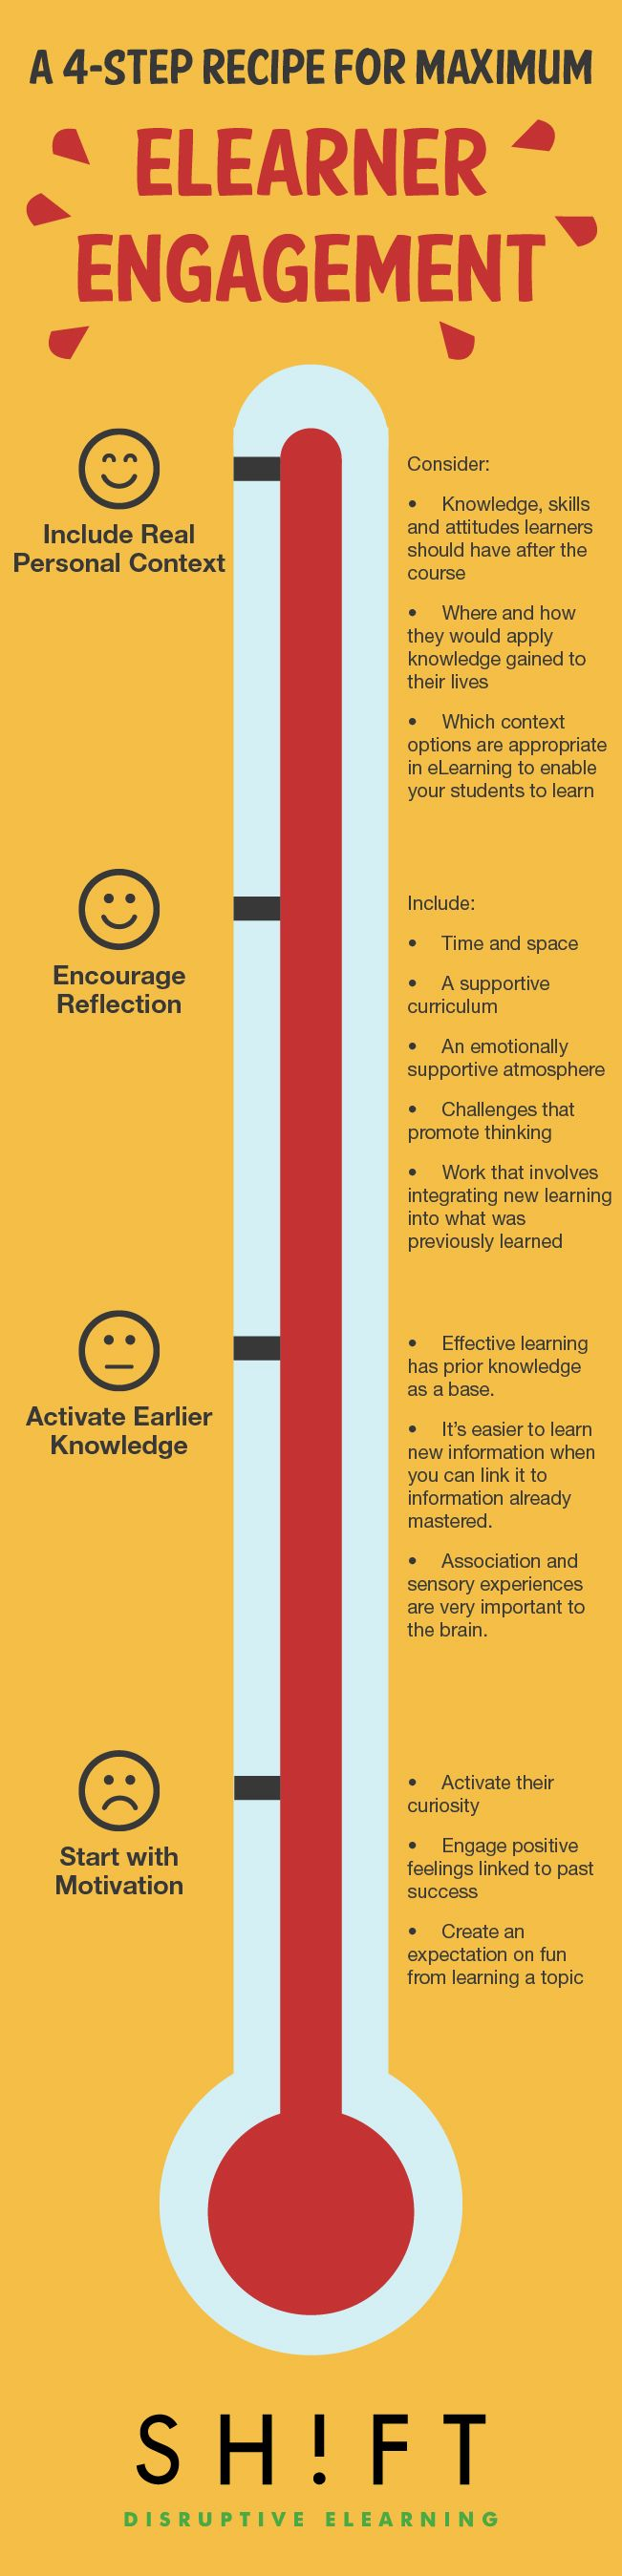 A 4-Step Recipe for Maximum eLearner Engagement